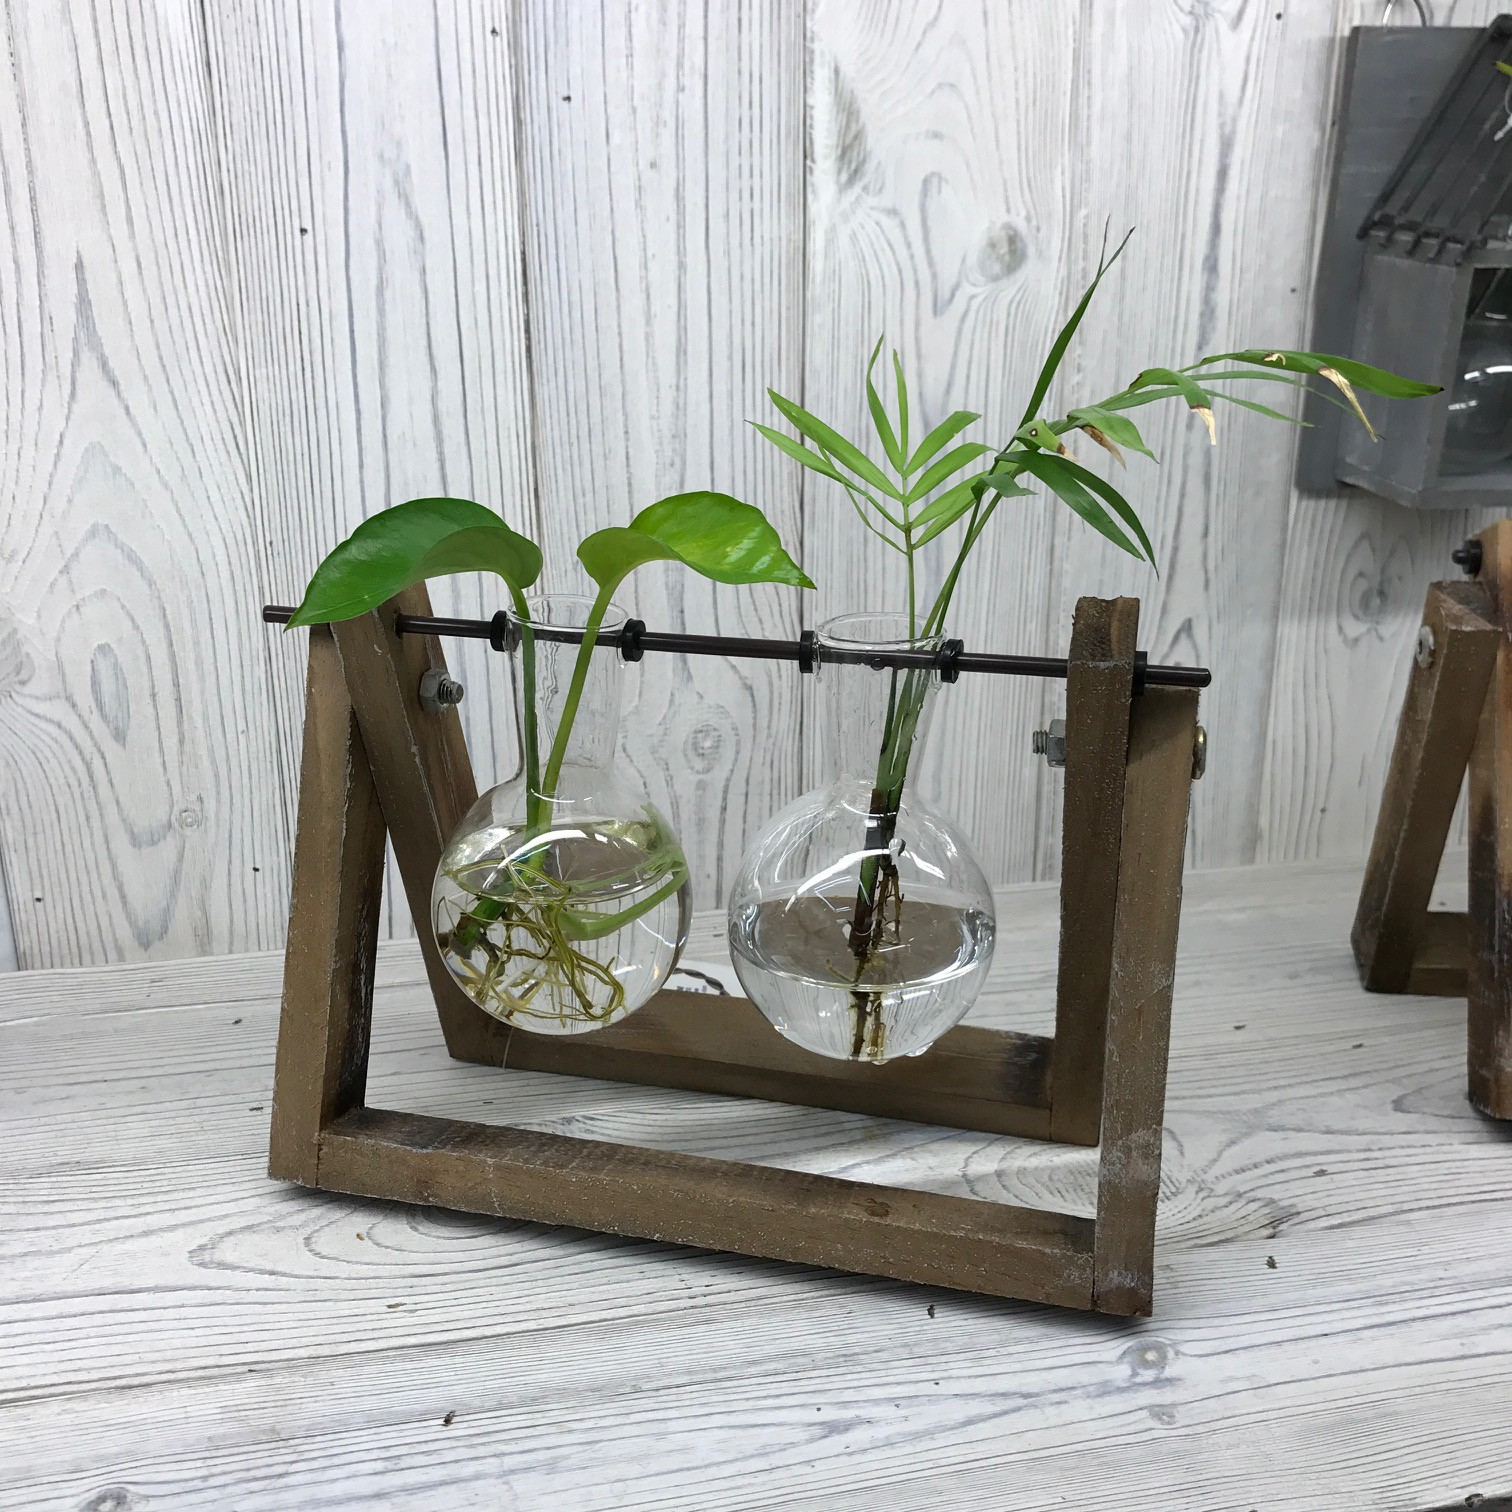 Hydroponic Home Décor Two Pot Wooden Stand